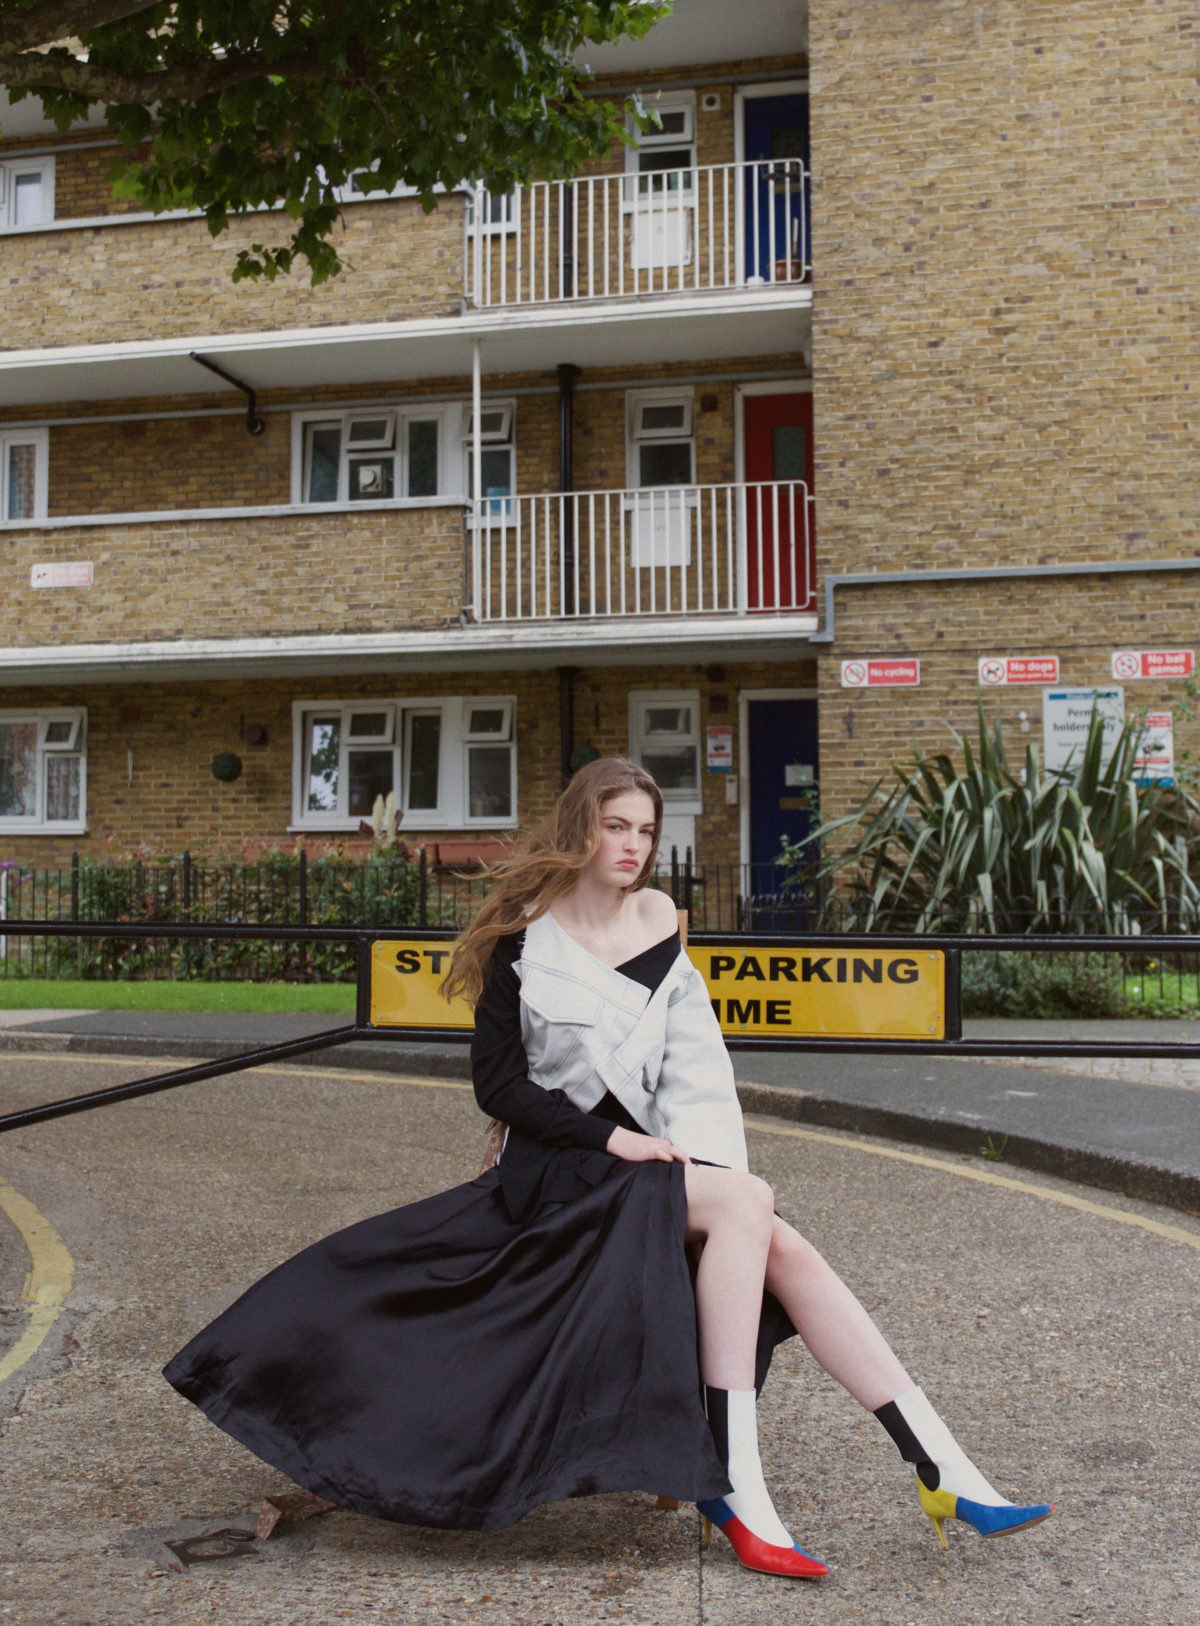 A VISION OF SUBURBIA: A BOUNDARY PUSHING FASHION LAND